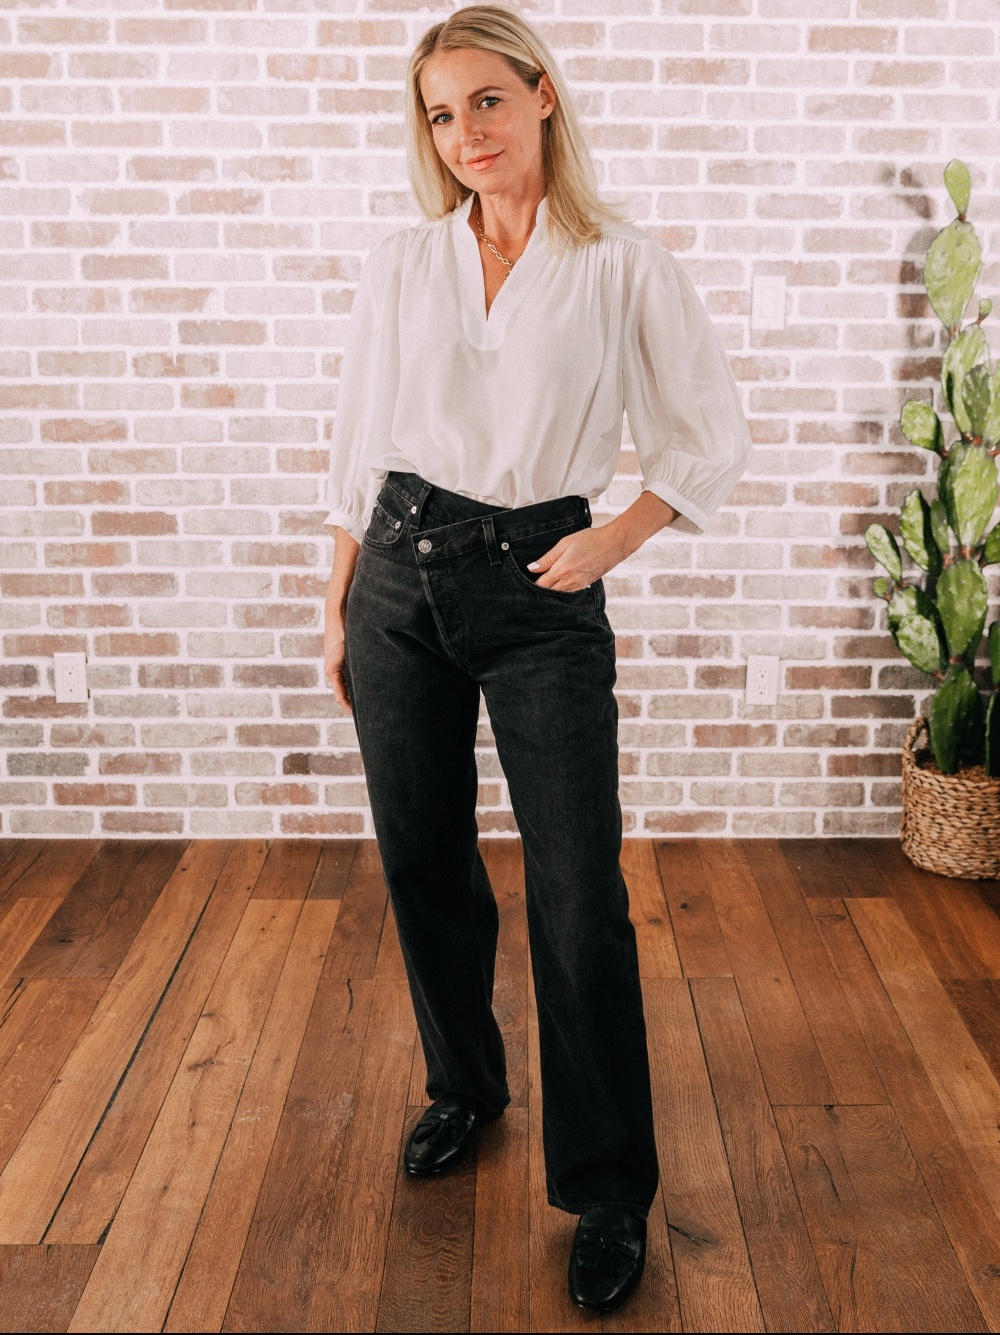 Stylish Work From Home Outfits, Fashion blogger Erin Busbee of BusbeeStyle.com wearing a white blouse by Frame with oversized black jeans by Agolde with asymmetrical button closure in Telluride, Colorado